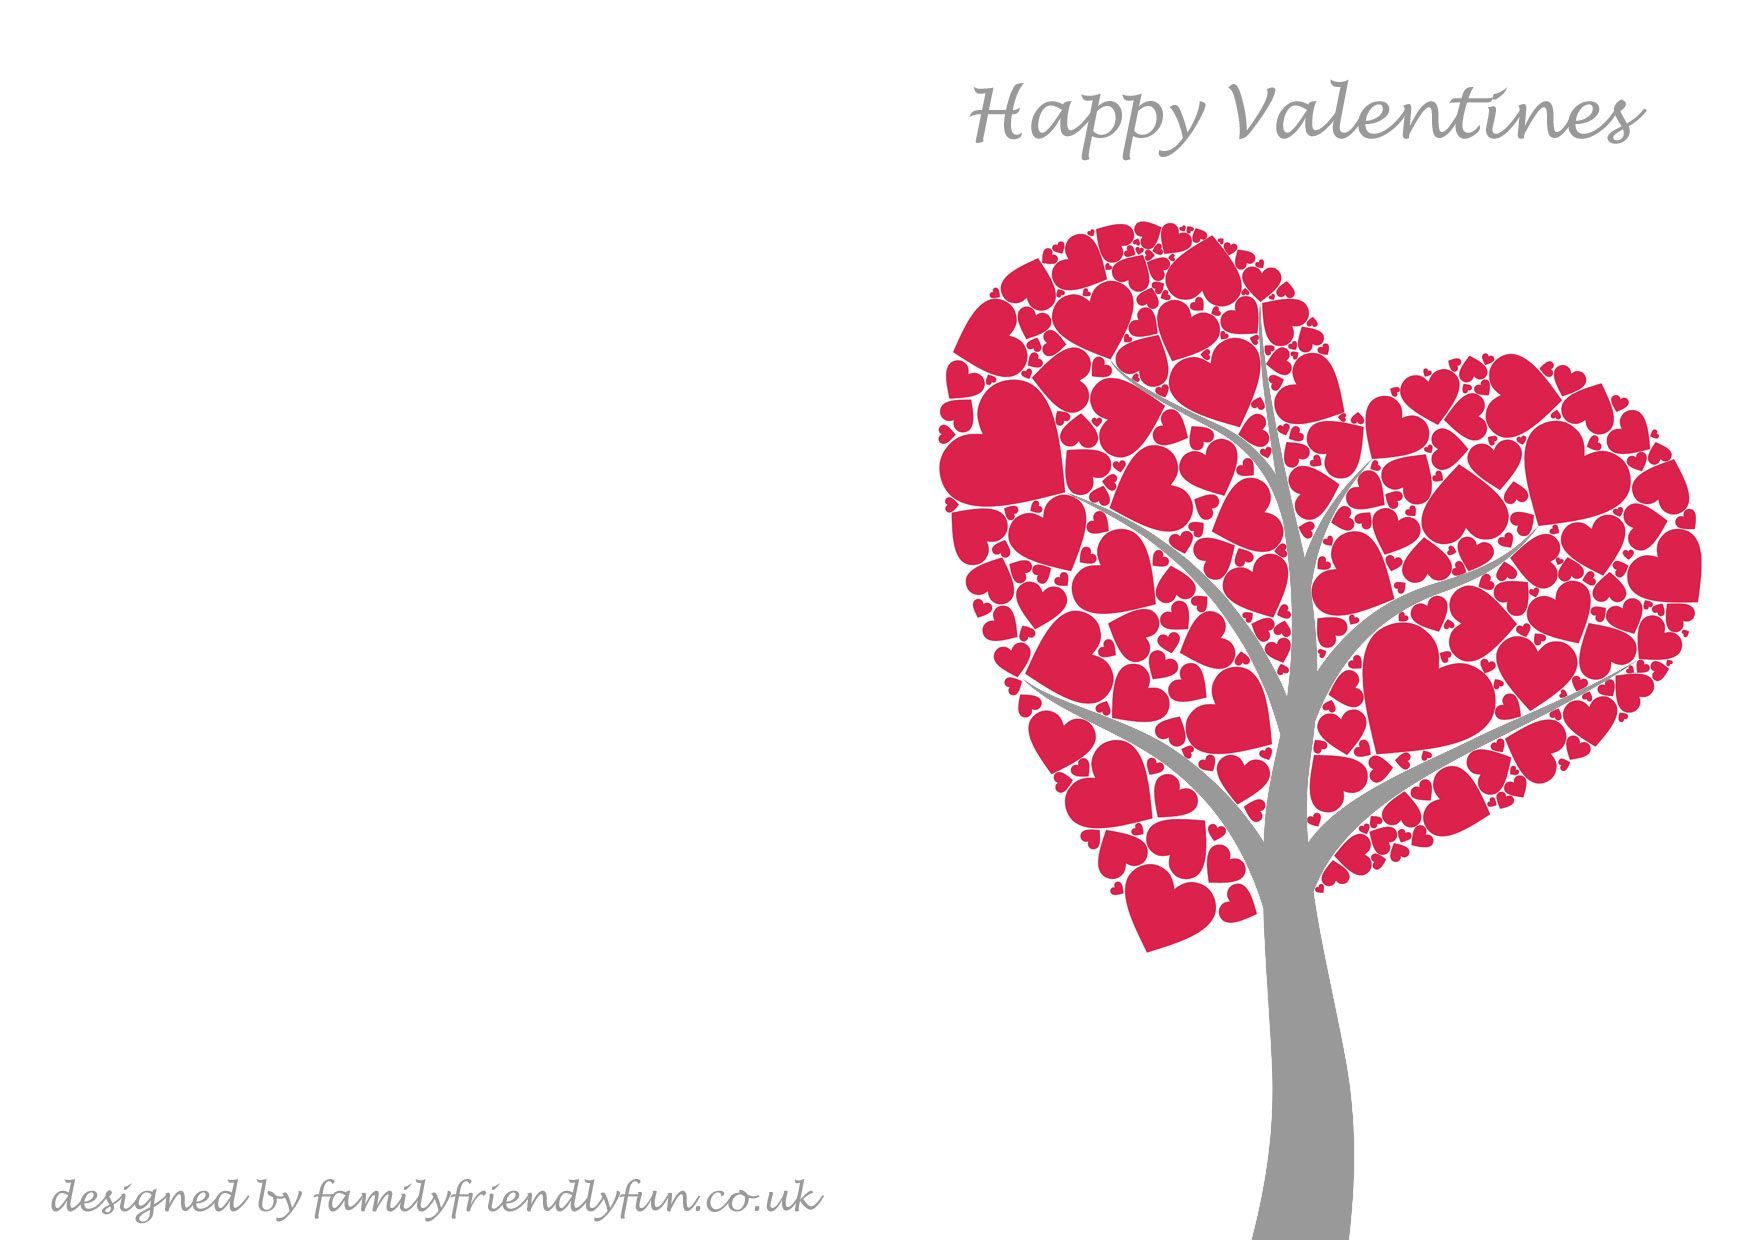 Valentines Day Cards Template Valentine Card Template Printable Valentines Day Cards Valentines Cards